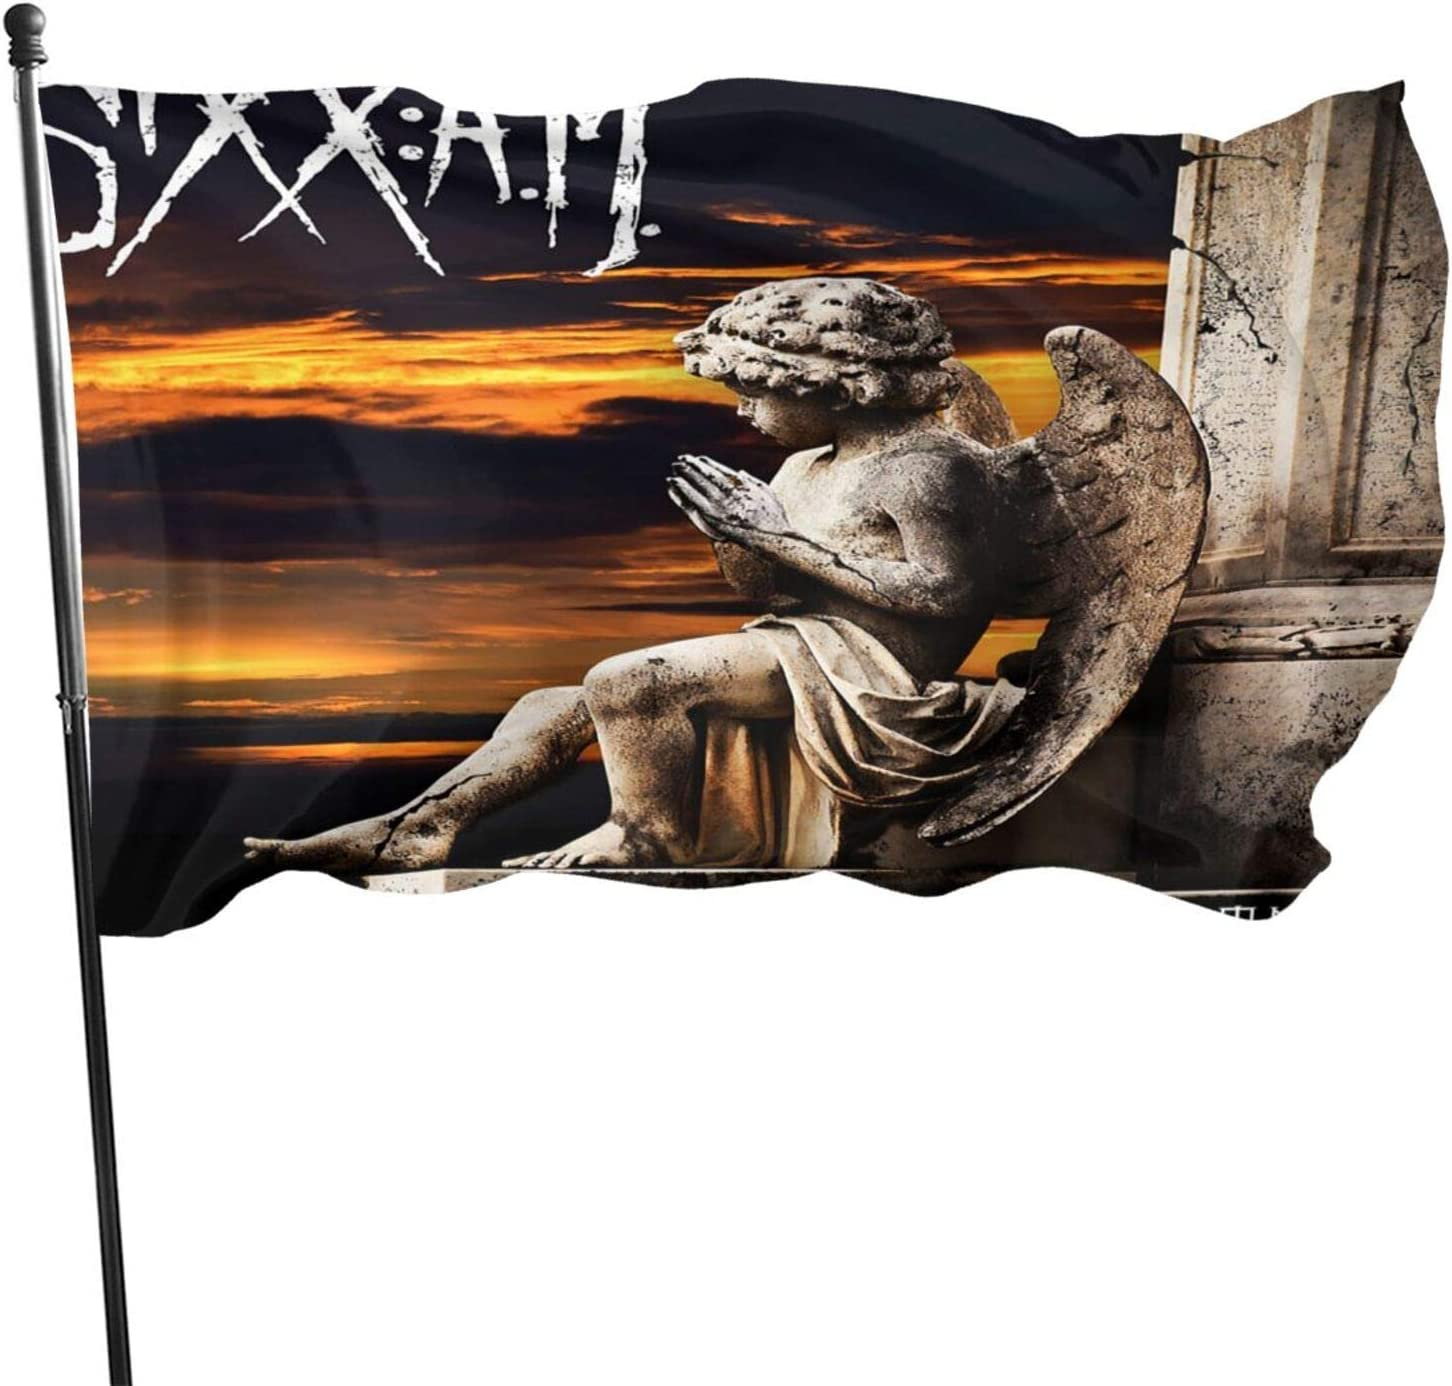 Sixx Am Prayers for The Damned Garden Flag Personalized Decoration Banner Indoor Outdoor Courtyard Sign Farm Party Activities 3 X 5 Ft